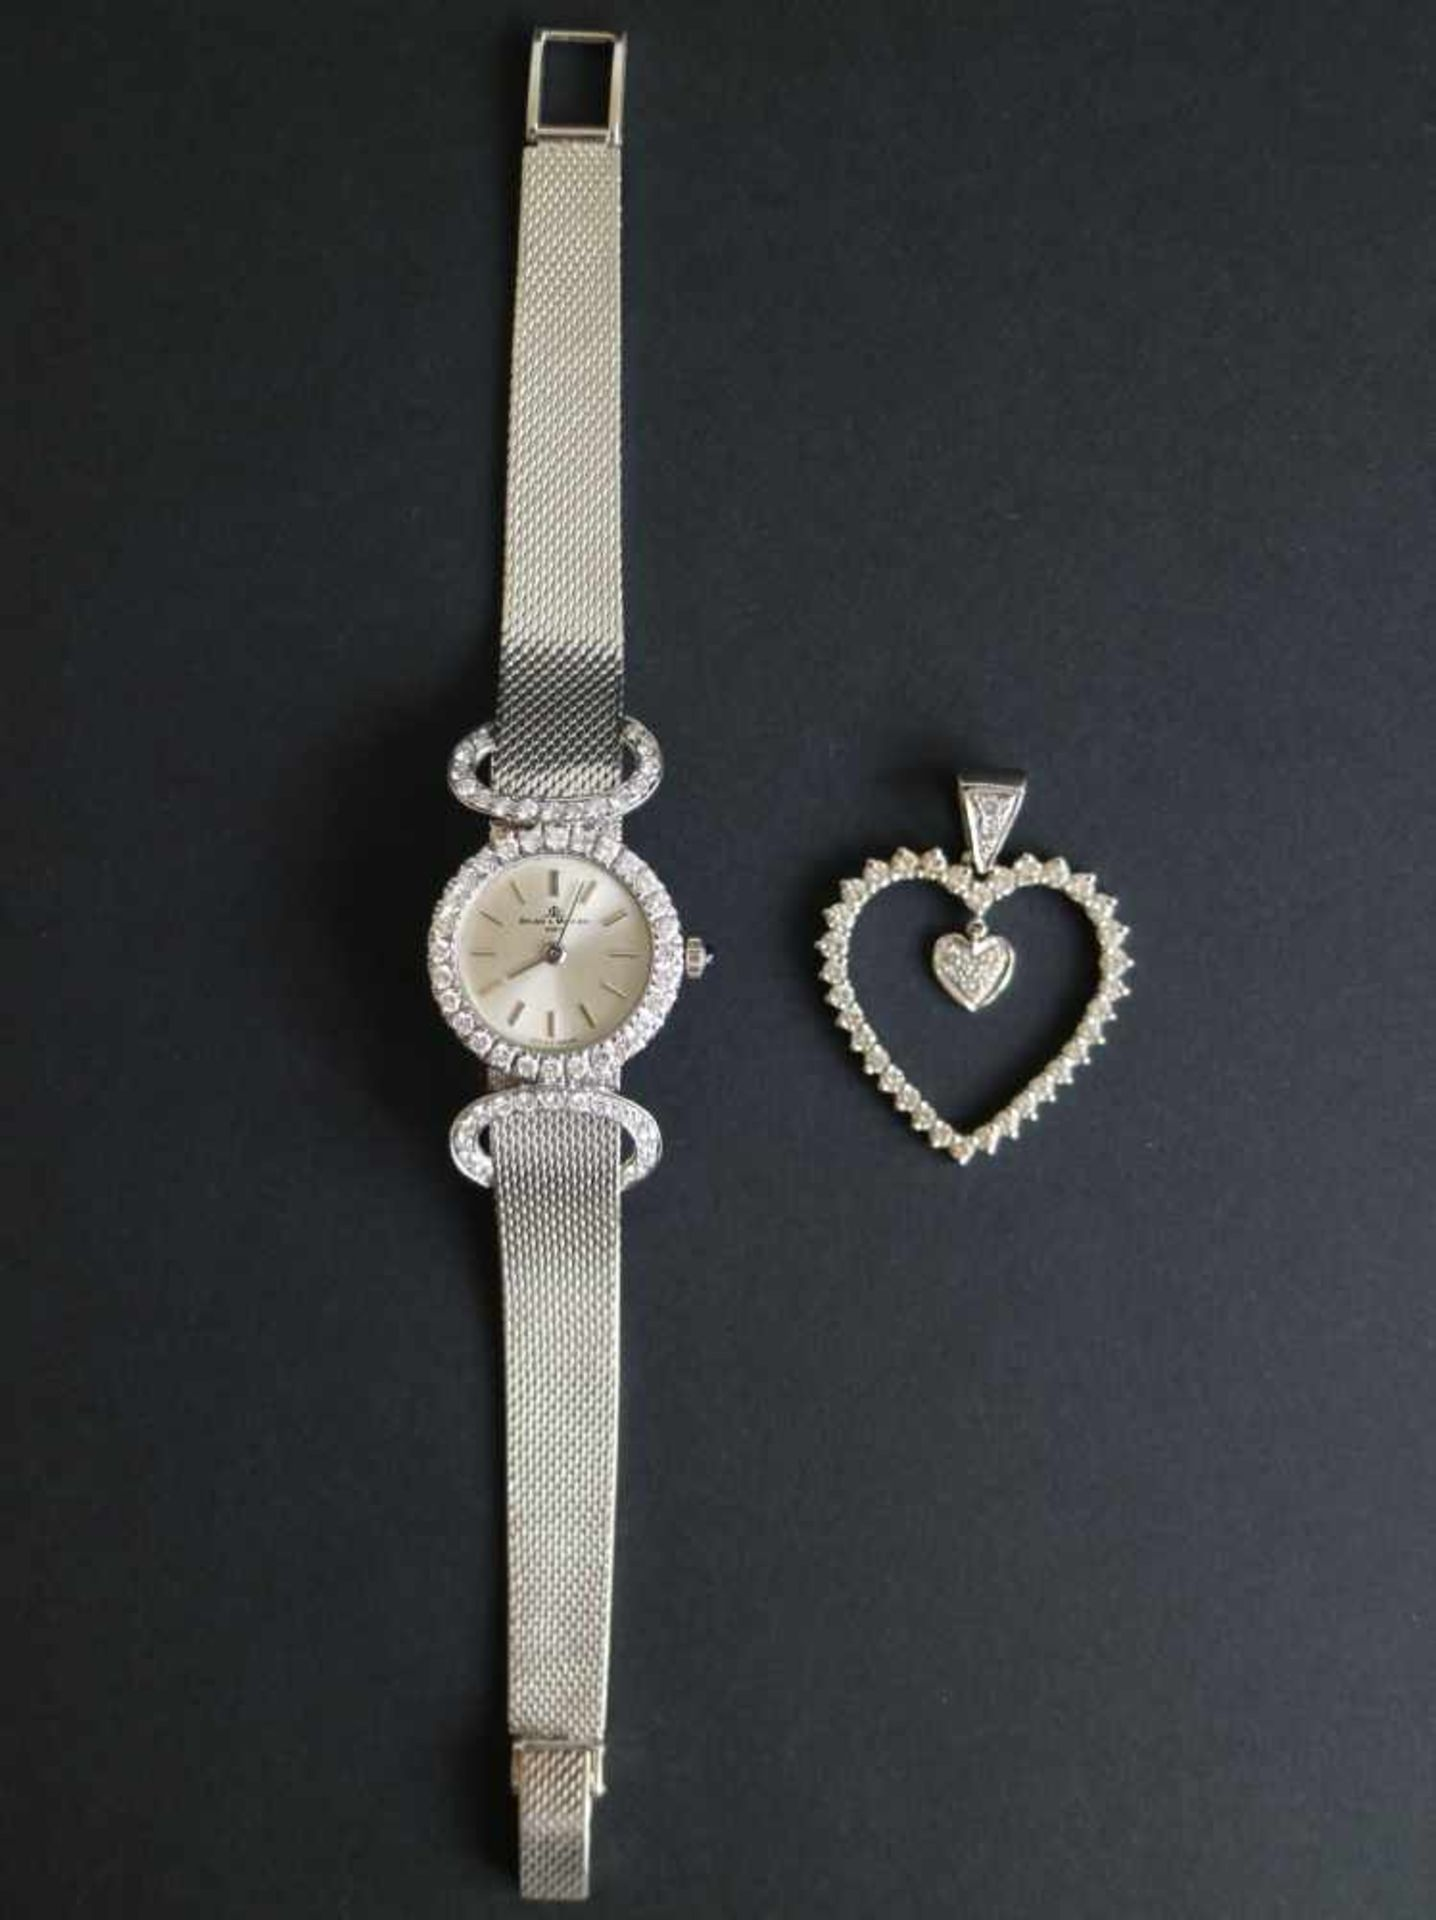 Los 946 - Beaume & Mercier ladies timepiece approx. 35 g with diamond 1.4 Kt and pendant heart with brilliant